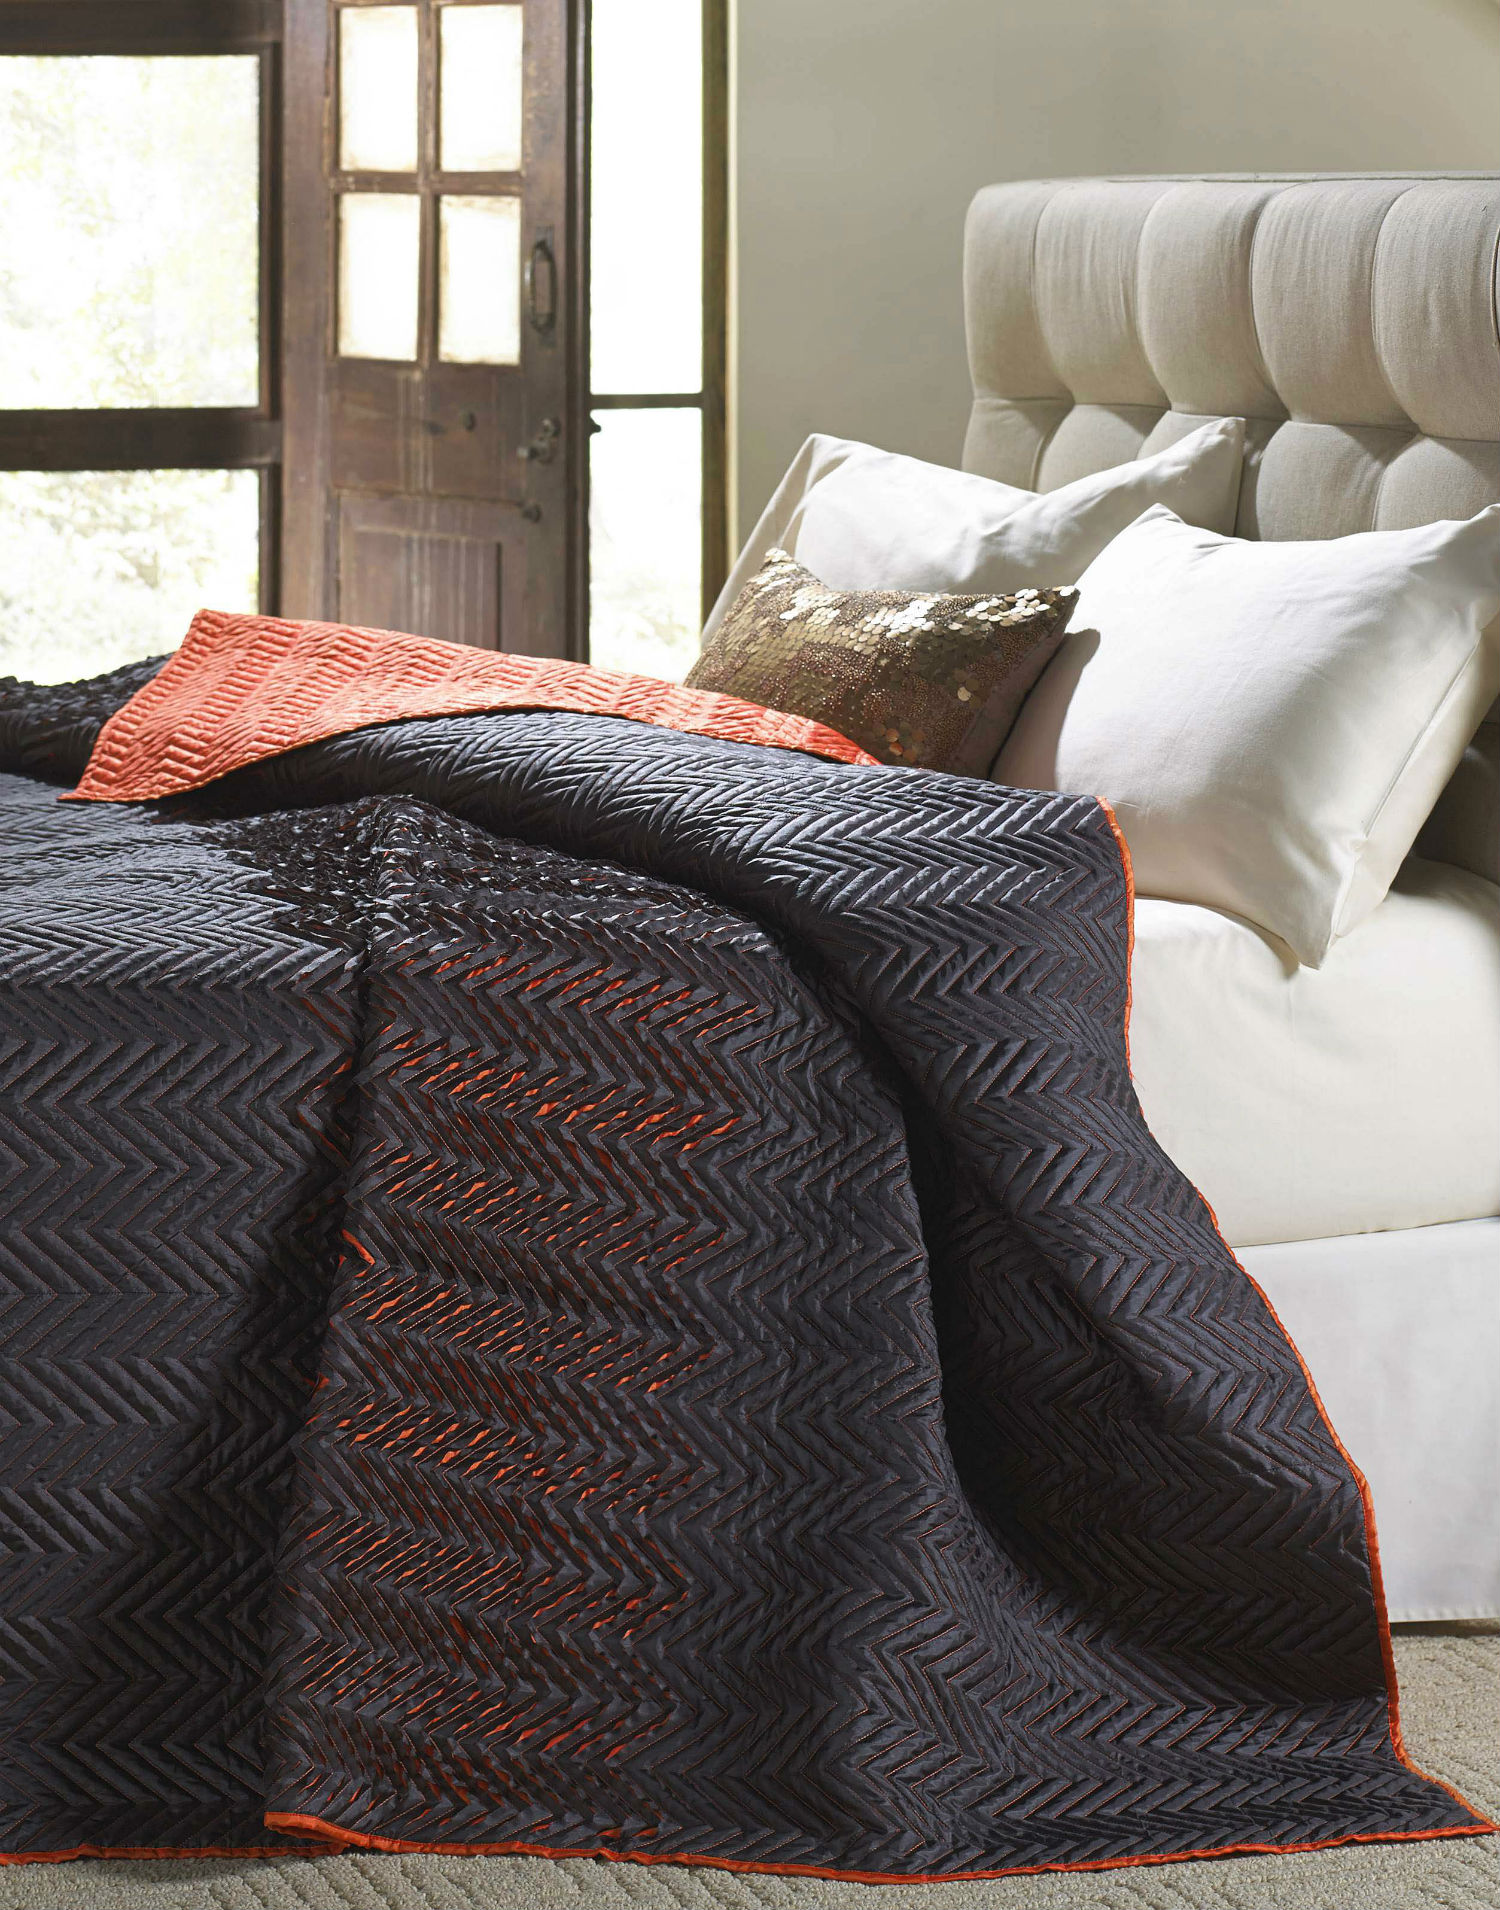 Tangier Charcoal & Orange by Cloud 9 Quilts